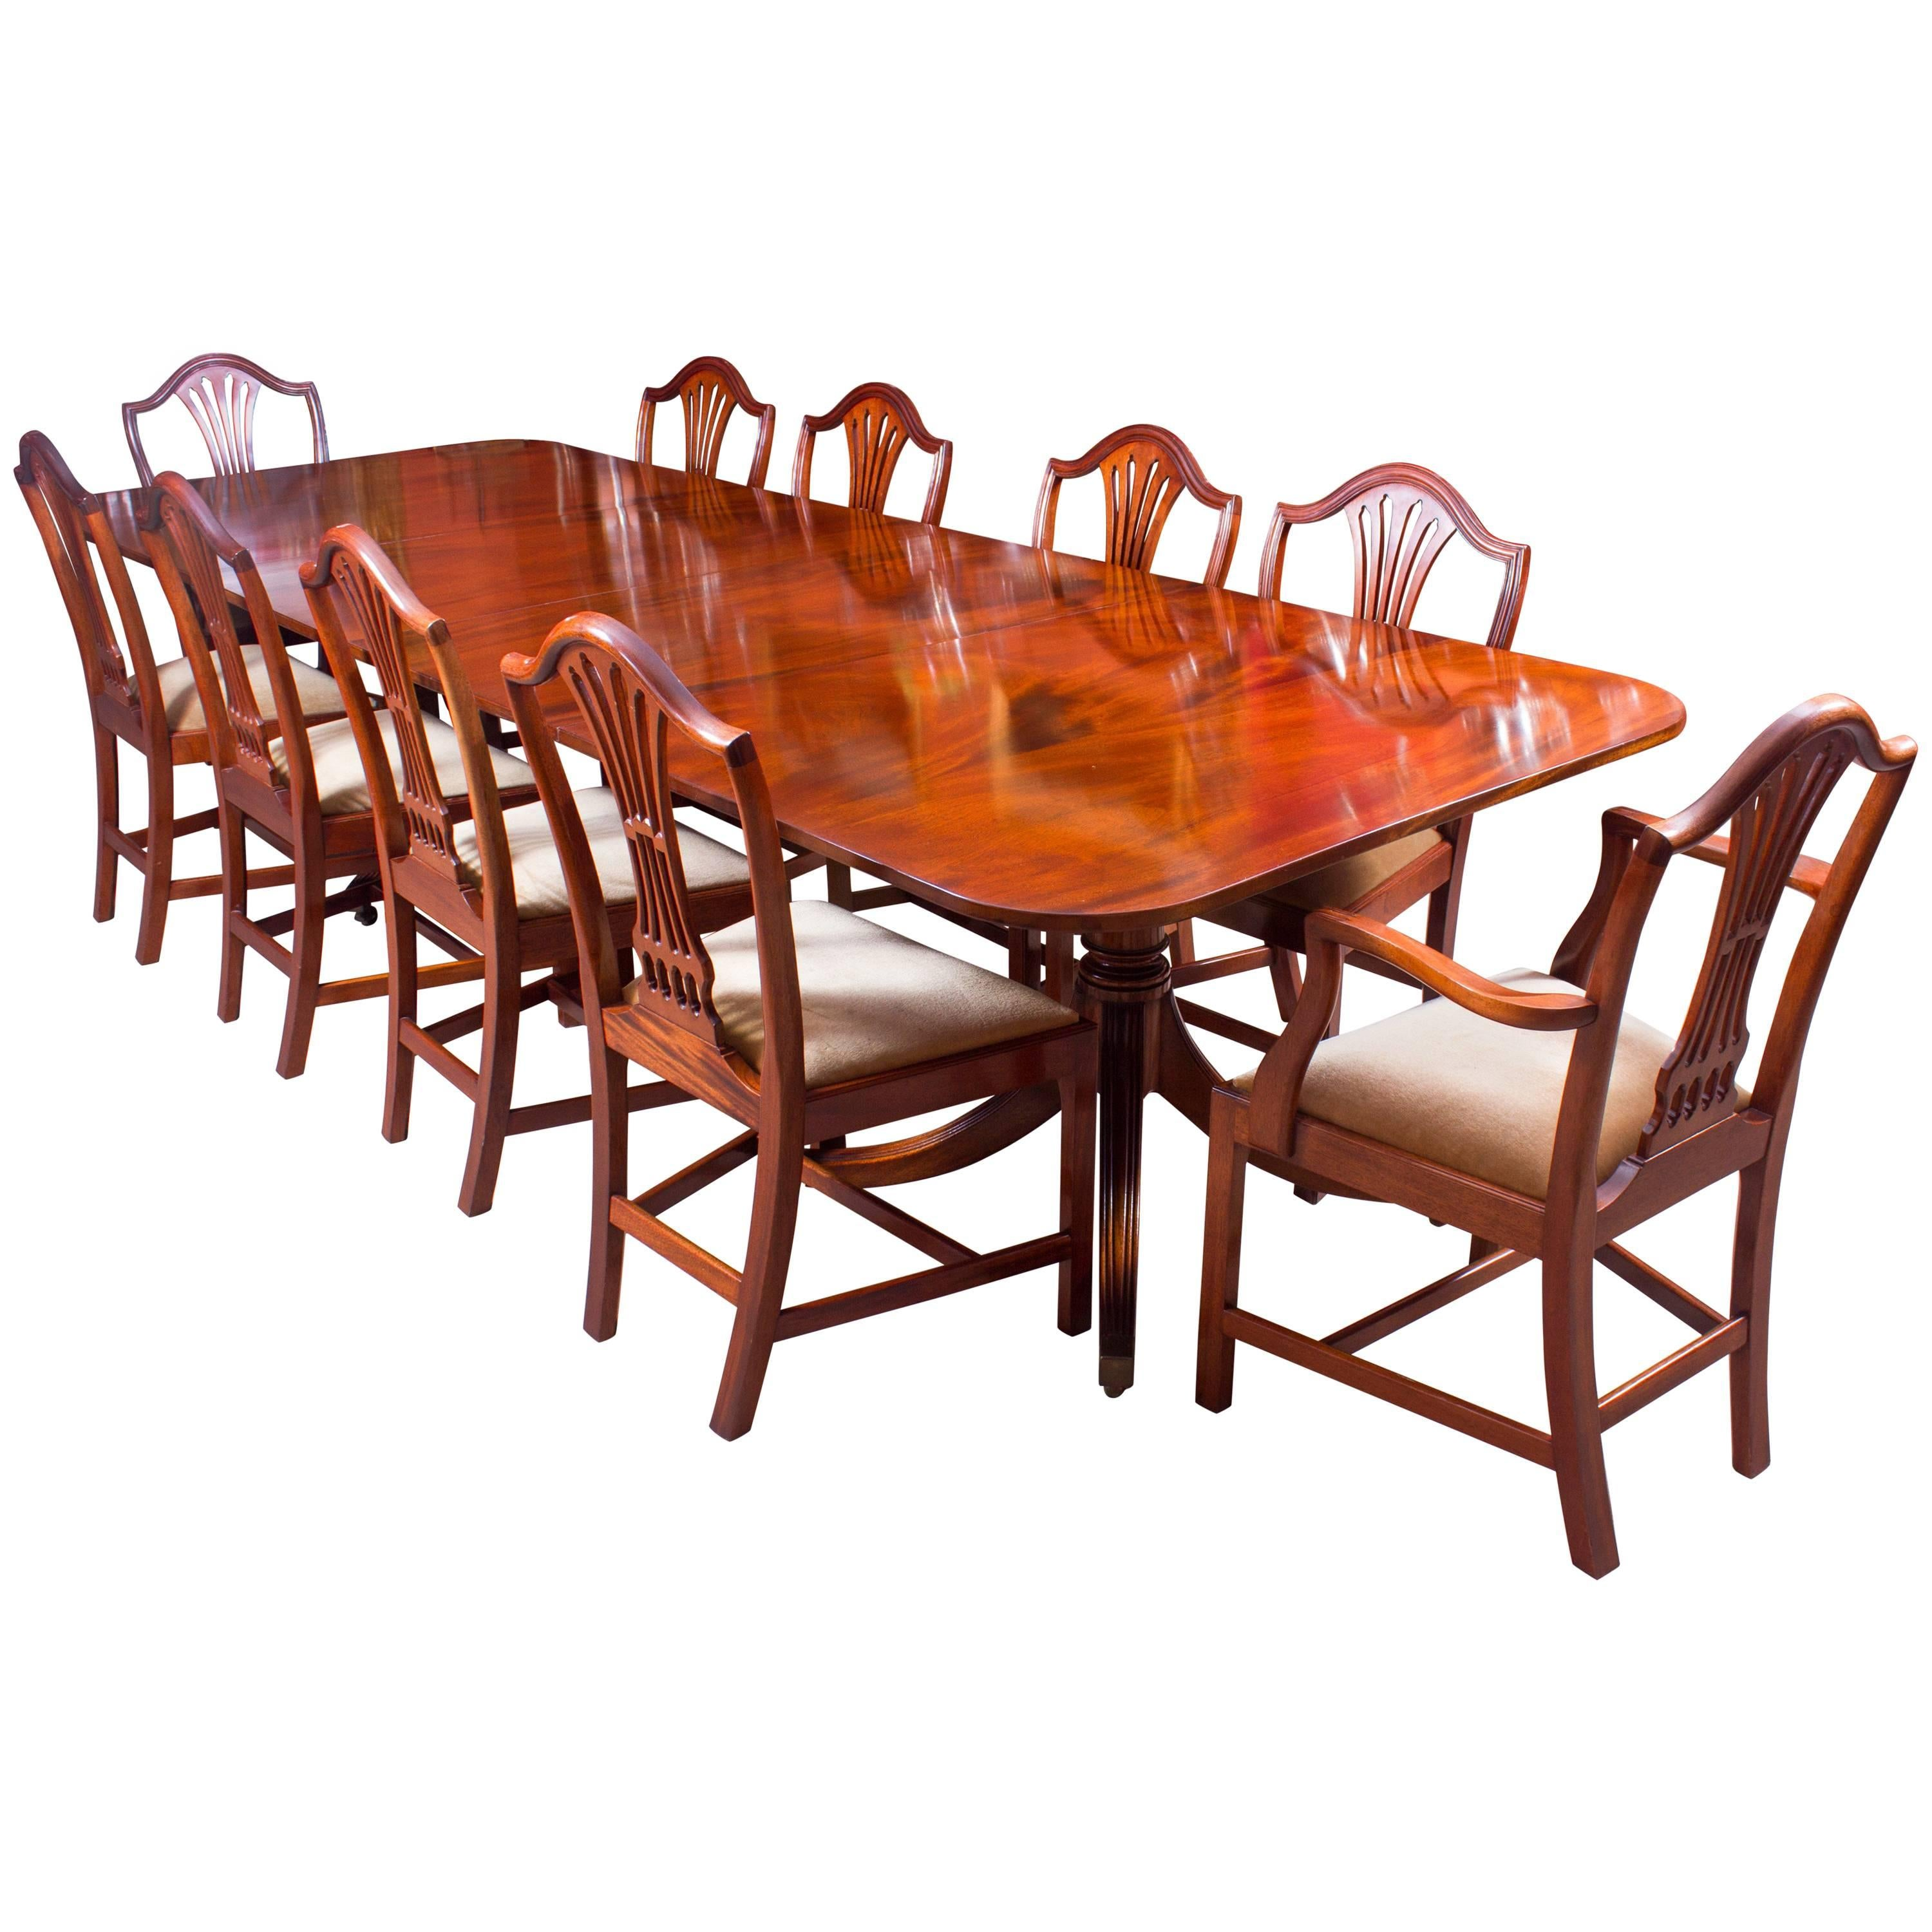 Antique Regency Dining Table C1820 And 8 Vintage Chairs At 1stdibs